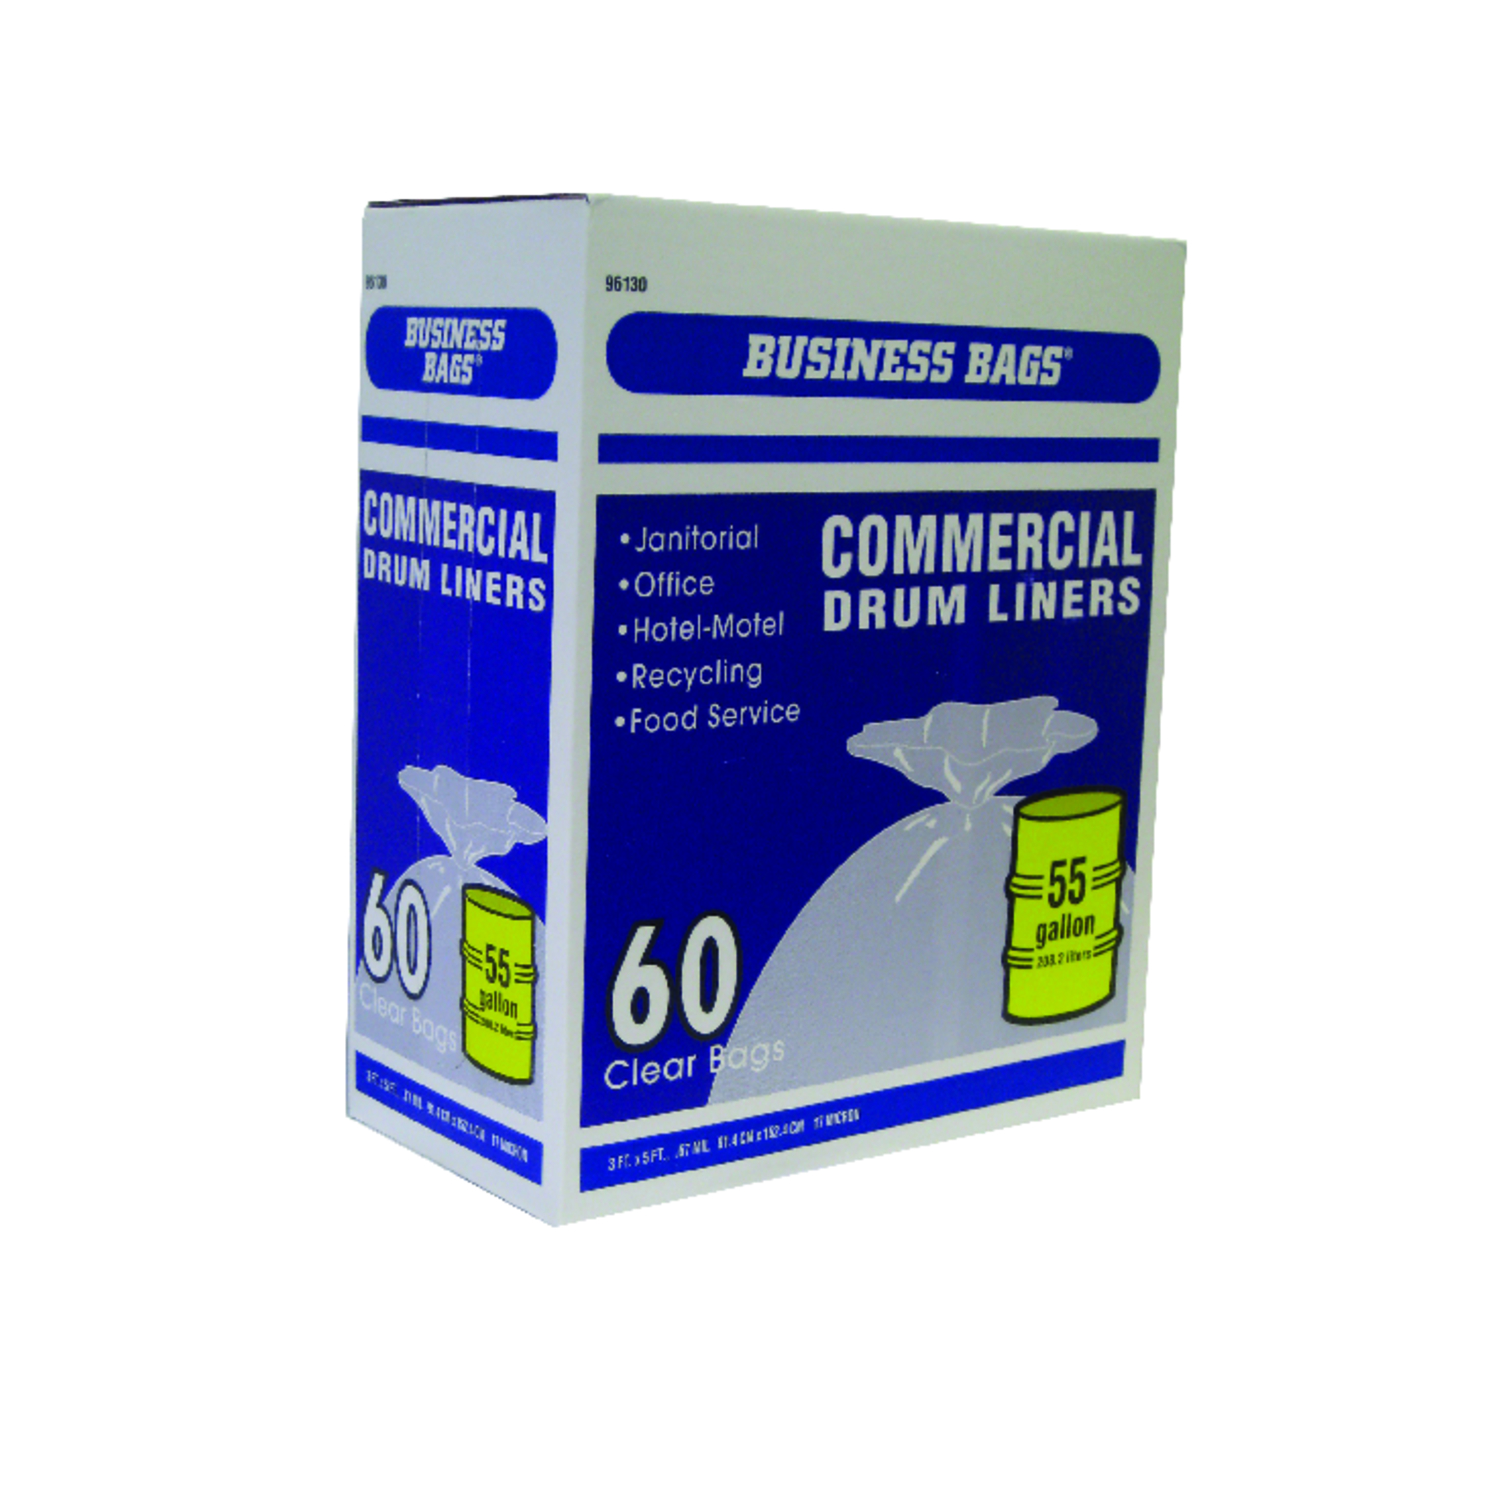 Business Bags  55 gal. Commercial Drum/Can Liners  Twist Tie  60 pk